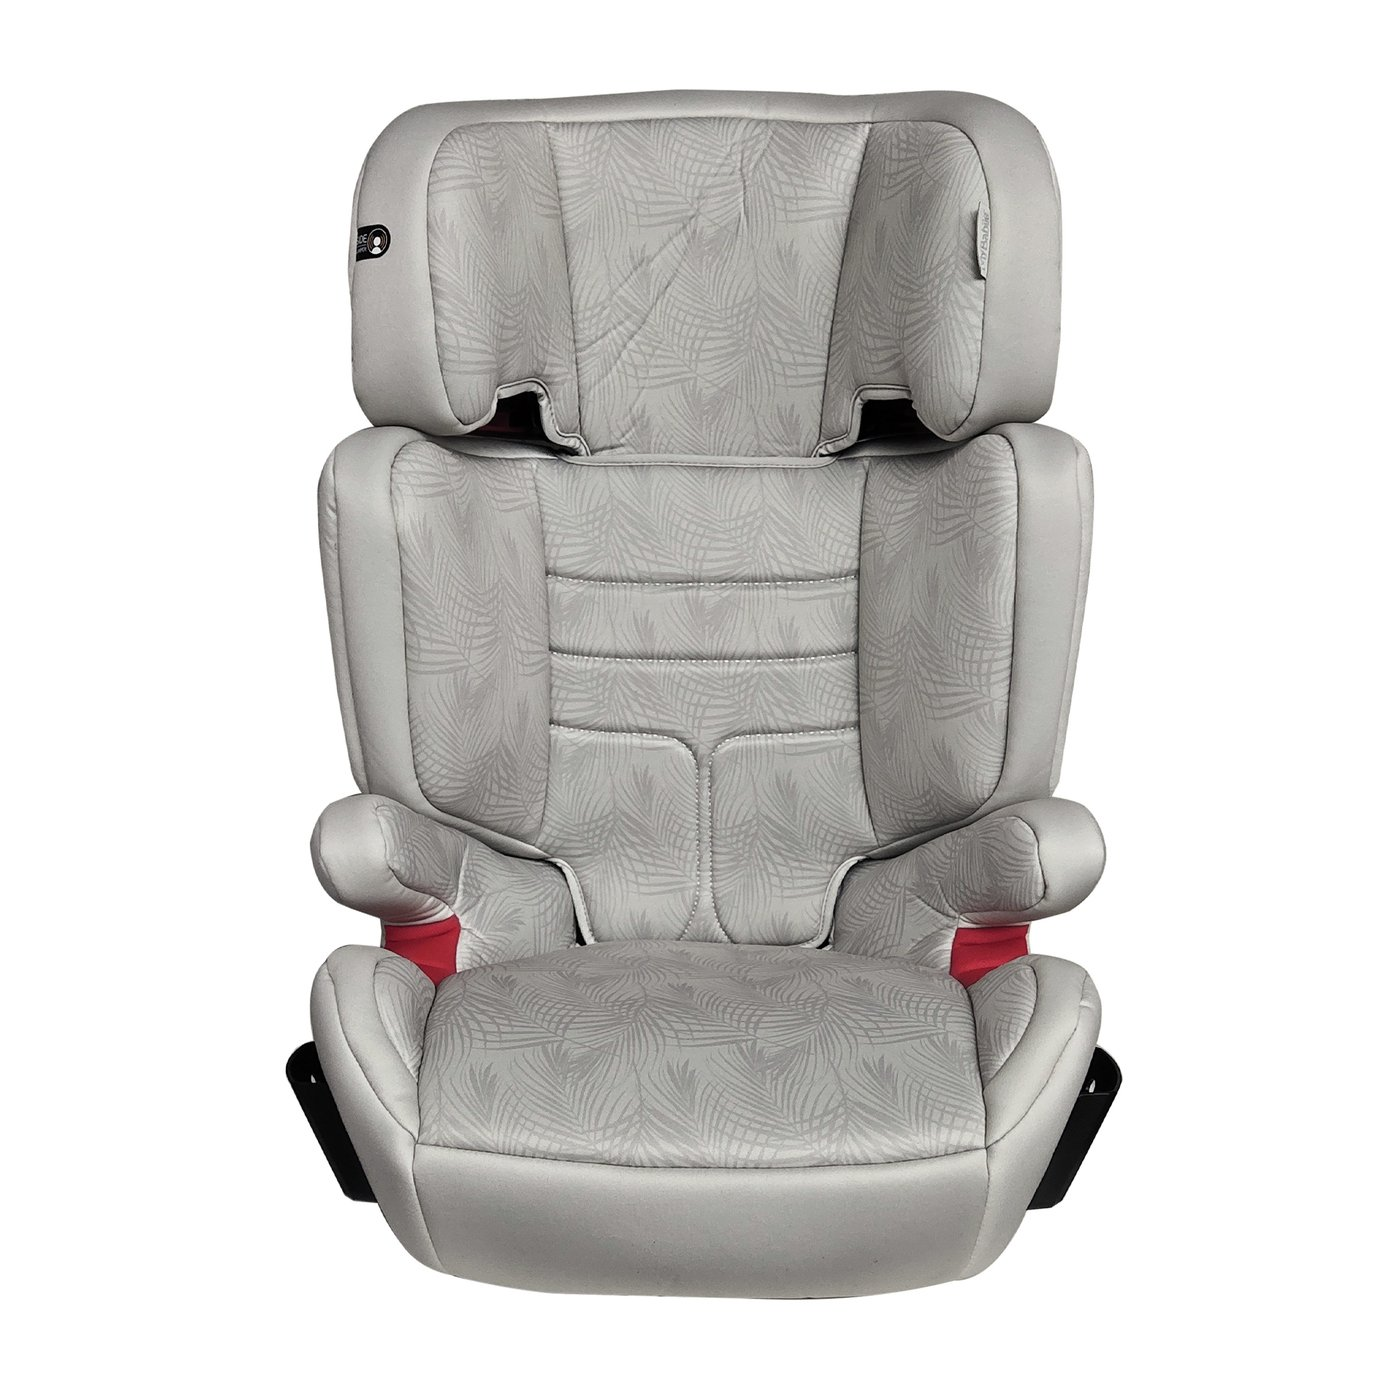 My Babiie Group 2/3 High Back Booster Car Seat - Grey